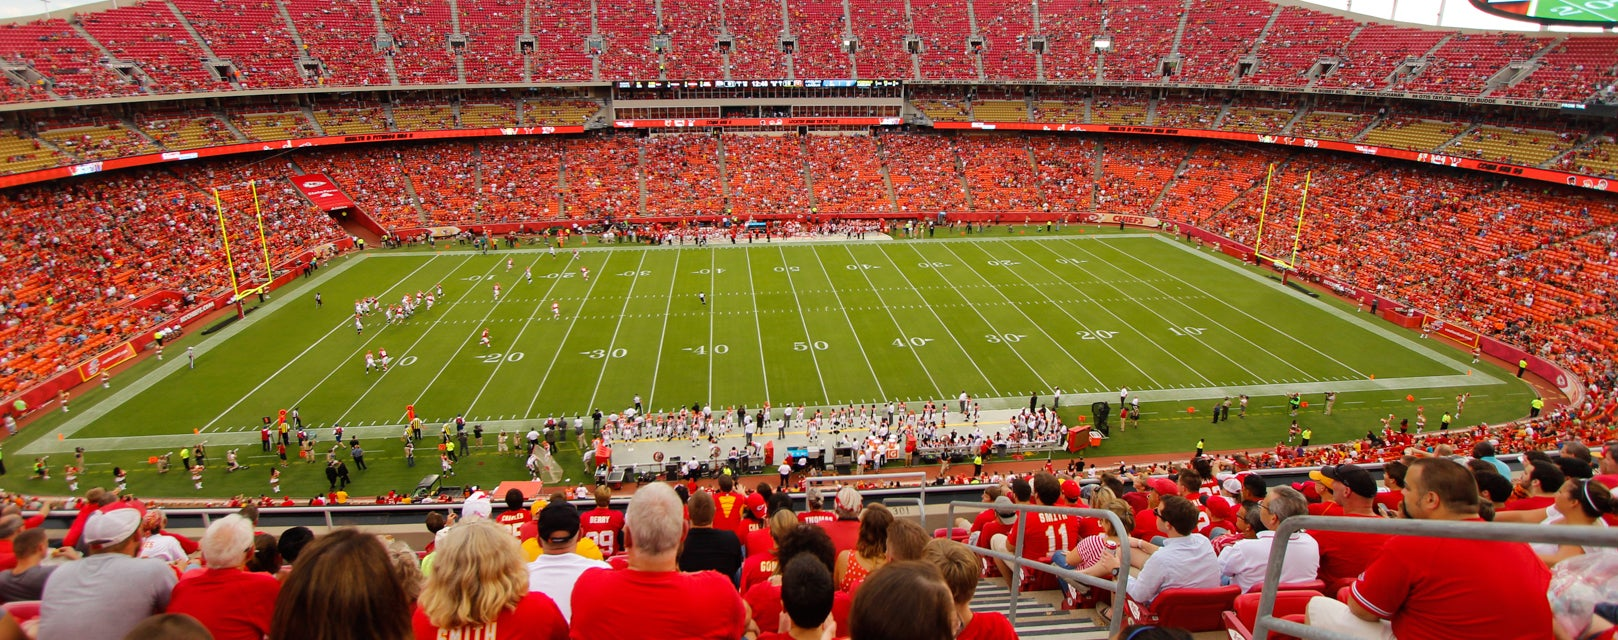 Seat view from Upper Red Sideline